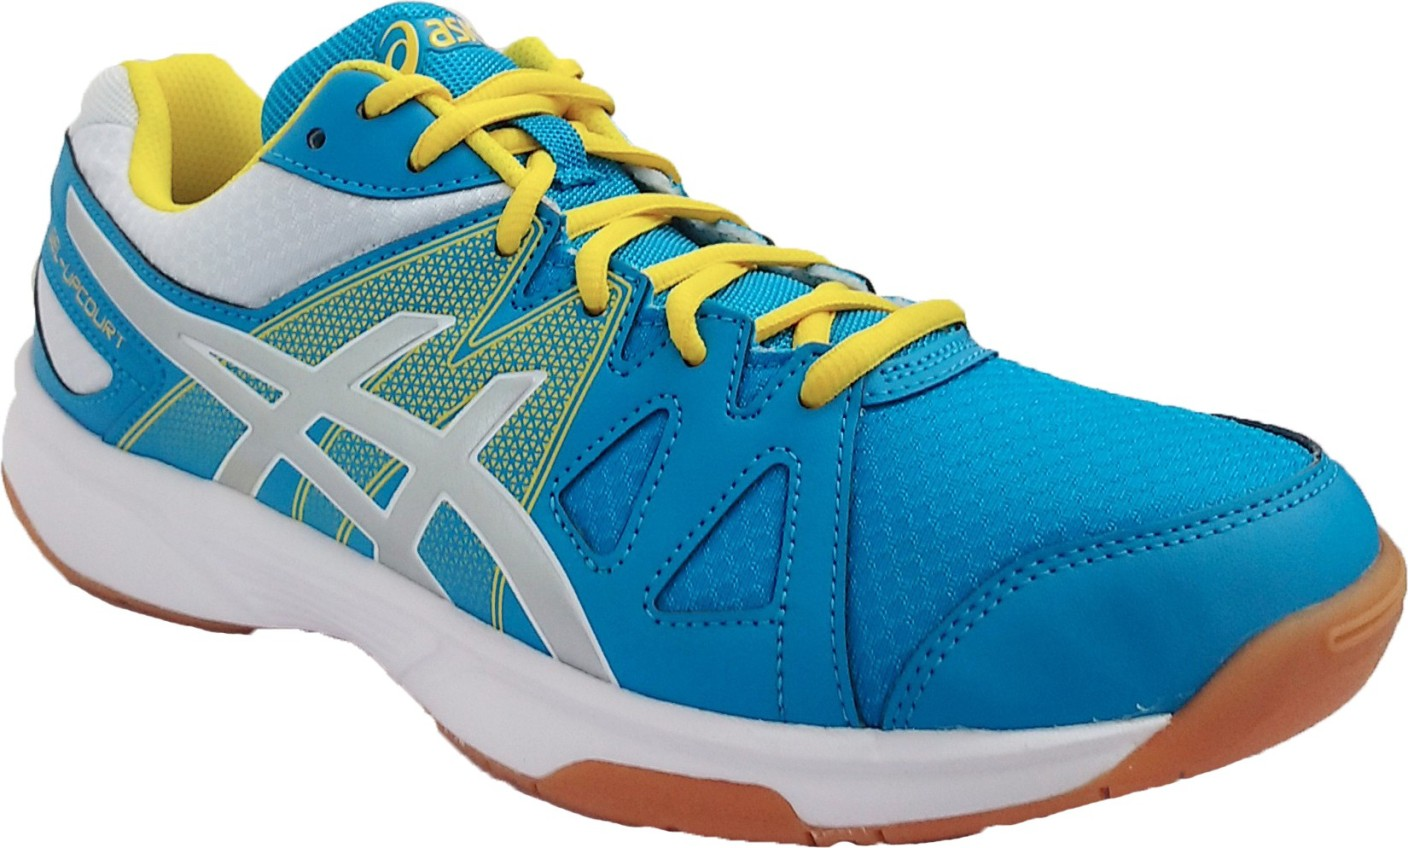 Asics Shoes Discount Online India